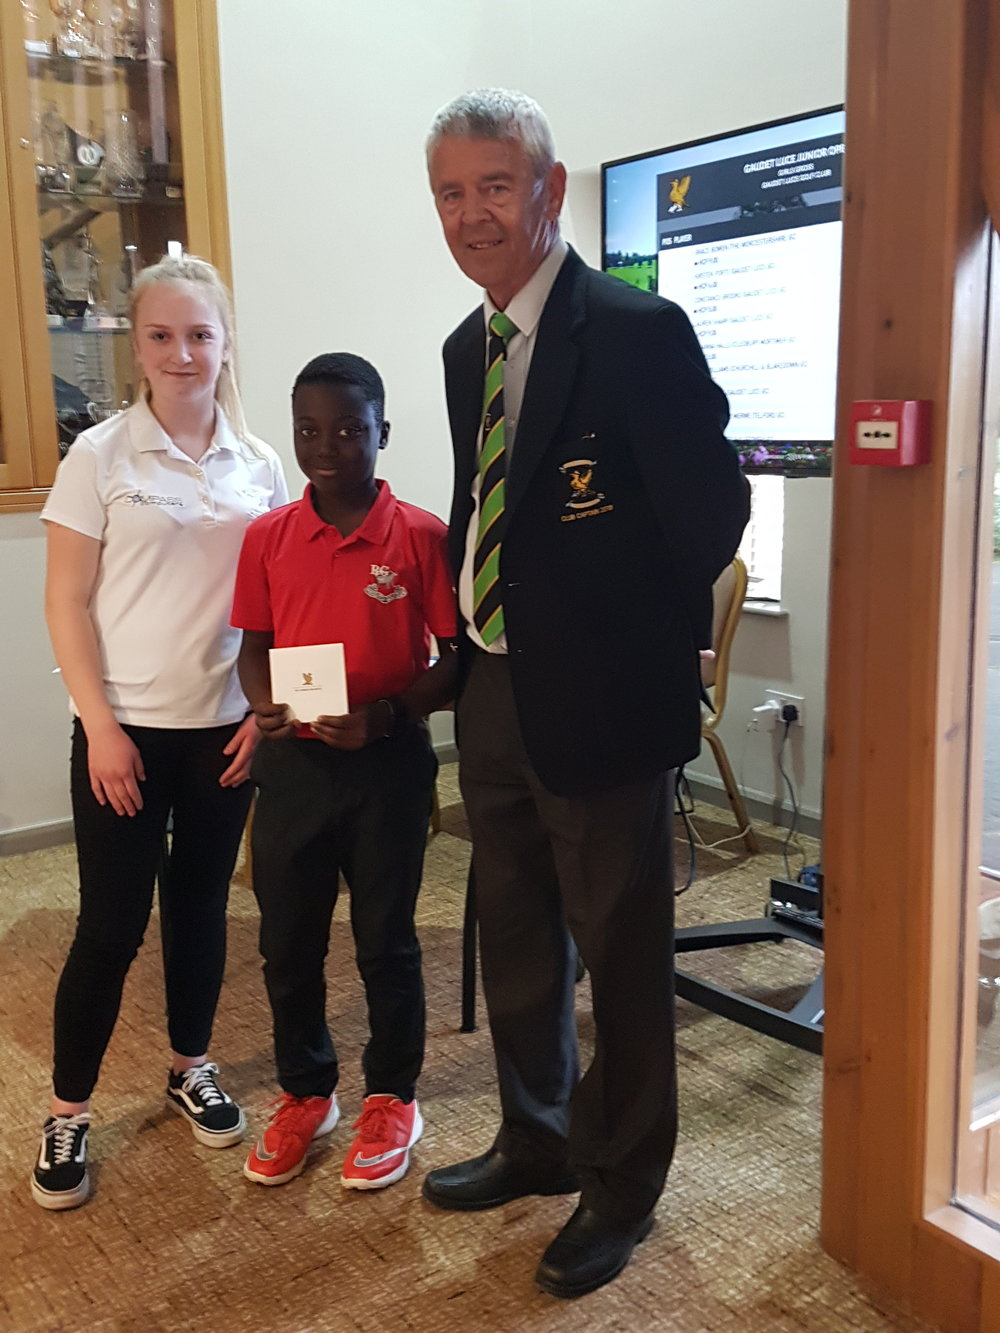 2018 Runner-up Junior Open 'Daily Telelgraph' Gaudet Luce GC